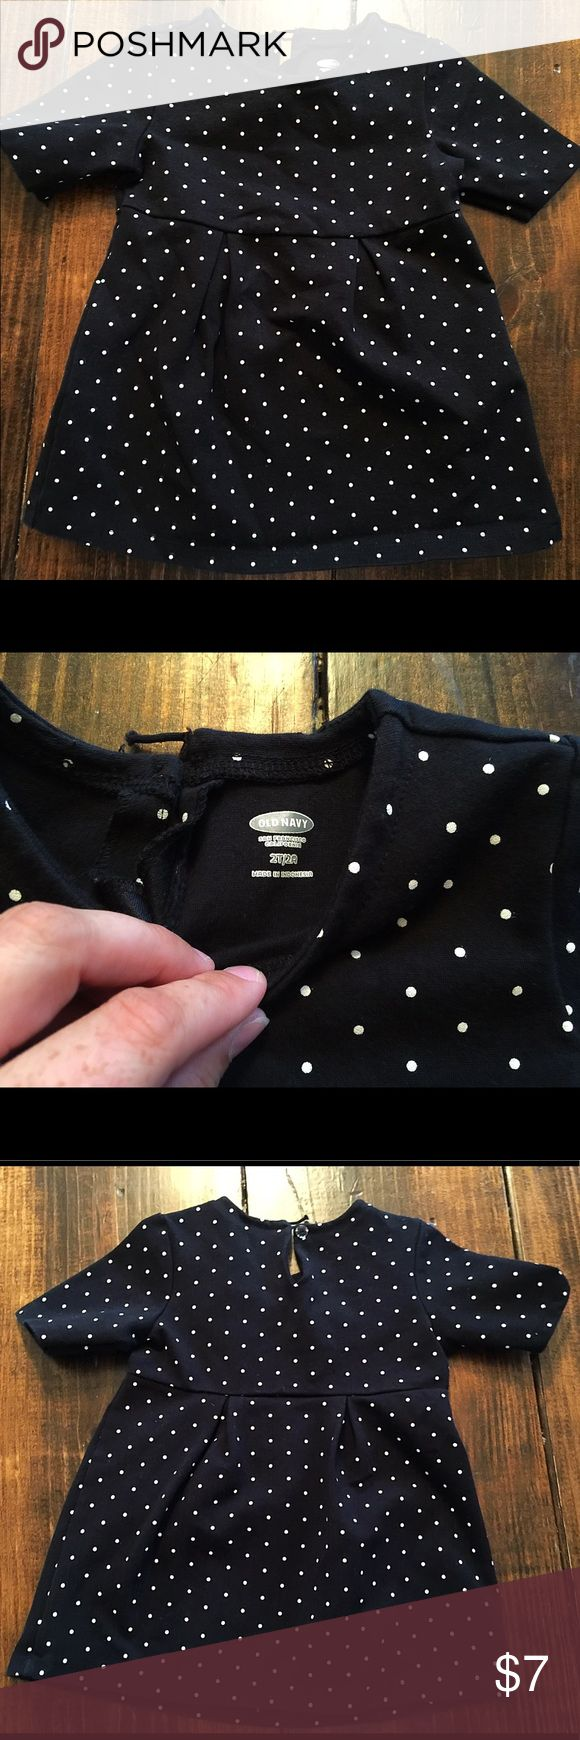 Black short sleeve dress with white polka dots Dress is in great condition. There's a little loop on the back of the dress that has come undone. It could be easily fixed. Old Navy Dresses Casual